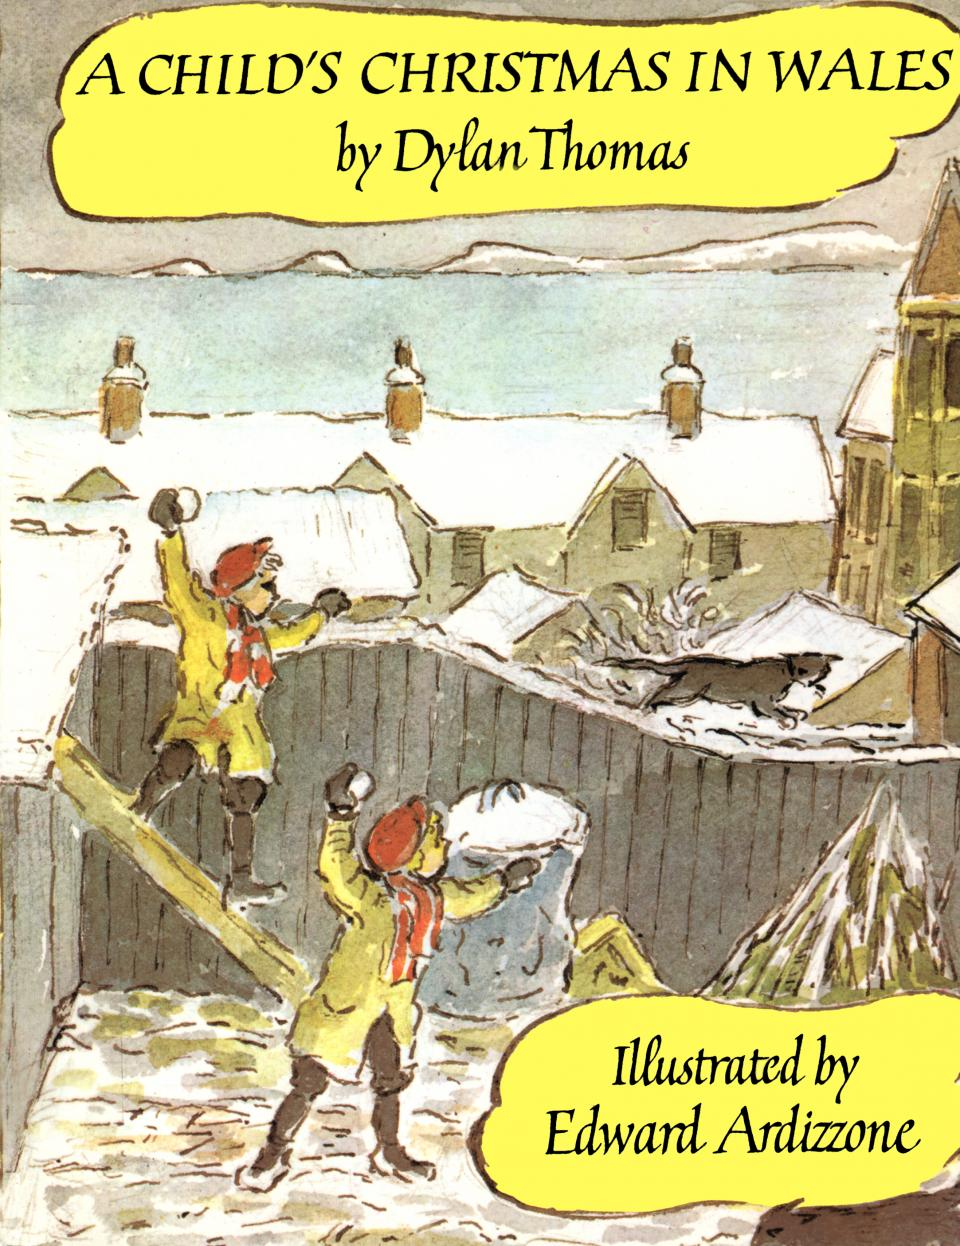 A Child's Christmas in Wales, illustrated by Edward Ardizzone